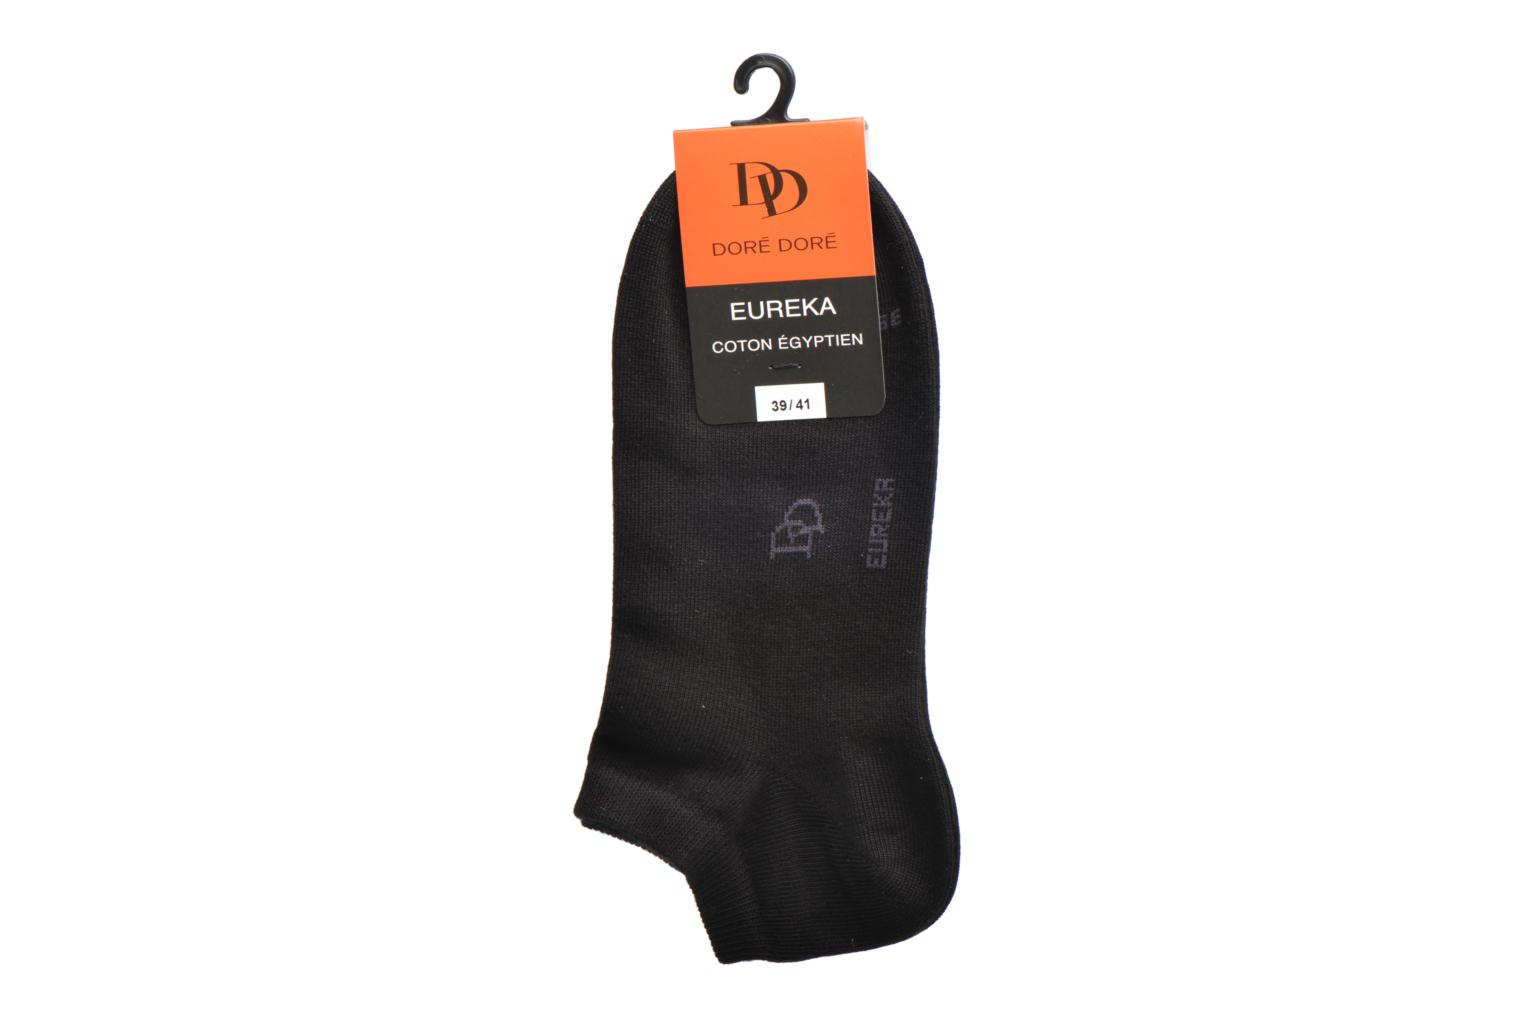 Chaussettes Sneakers Chausson Maille Unie E-day 16160